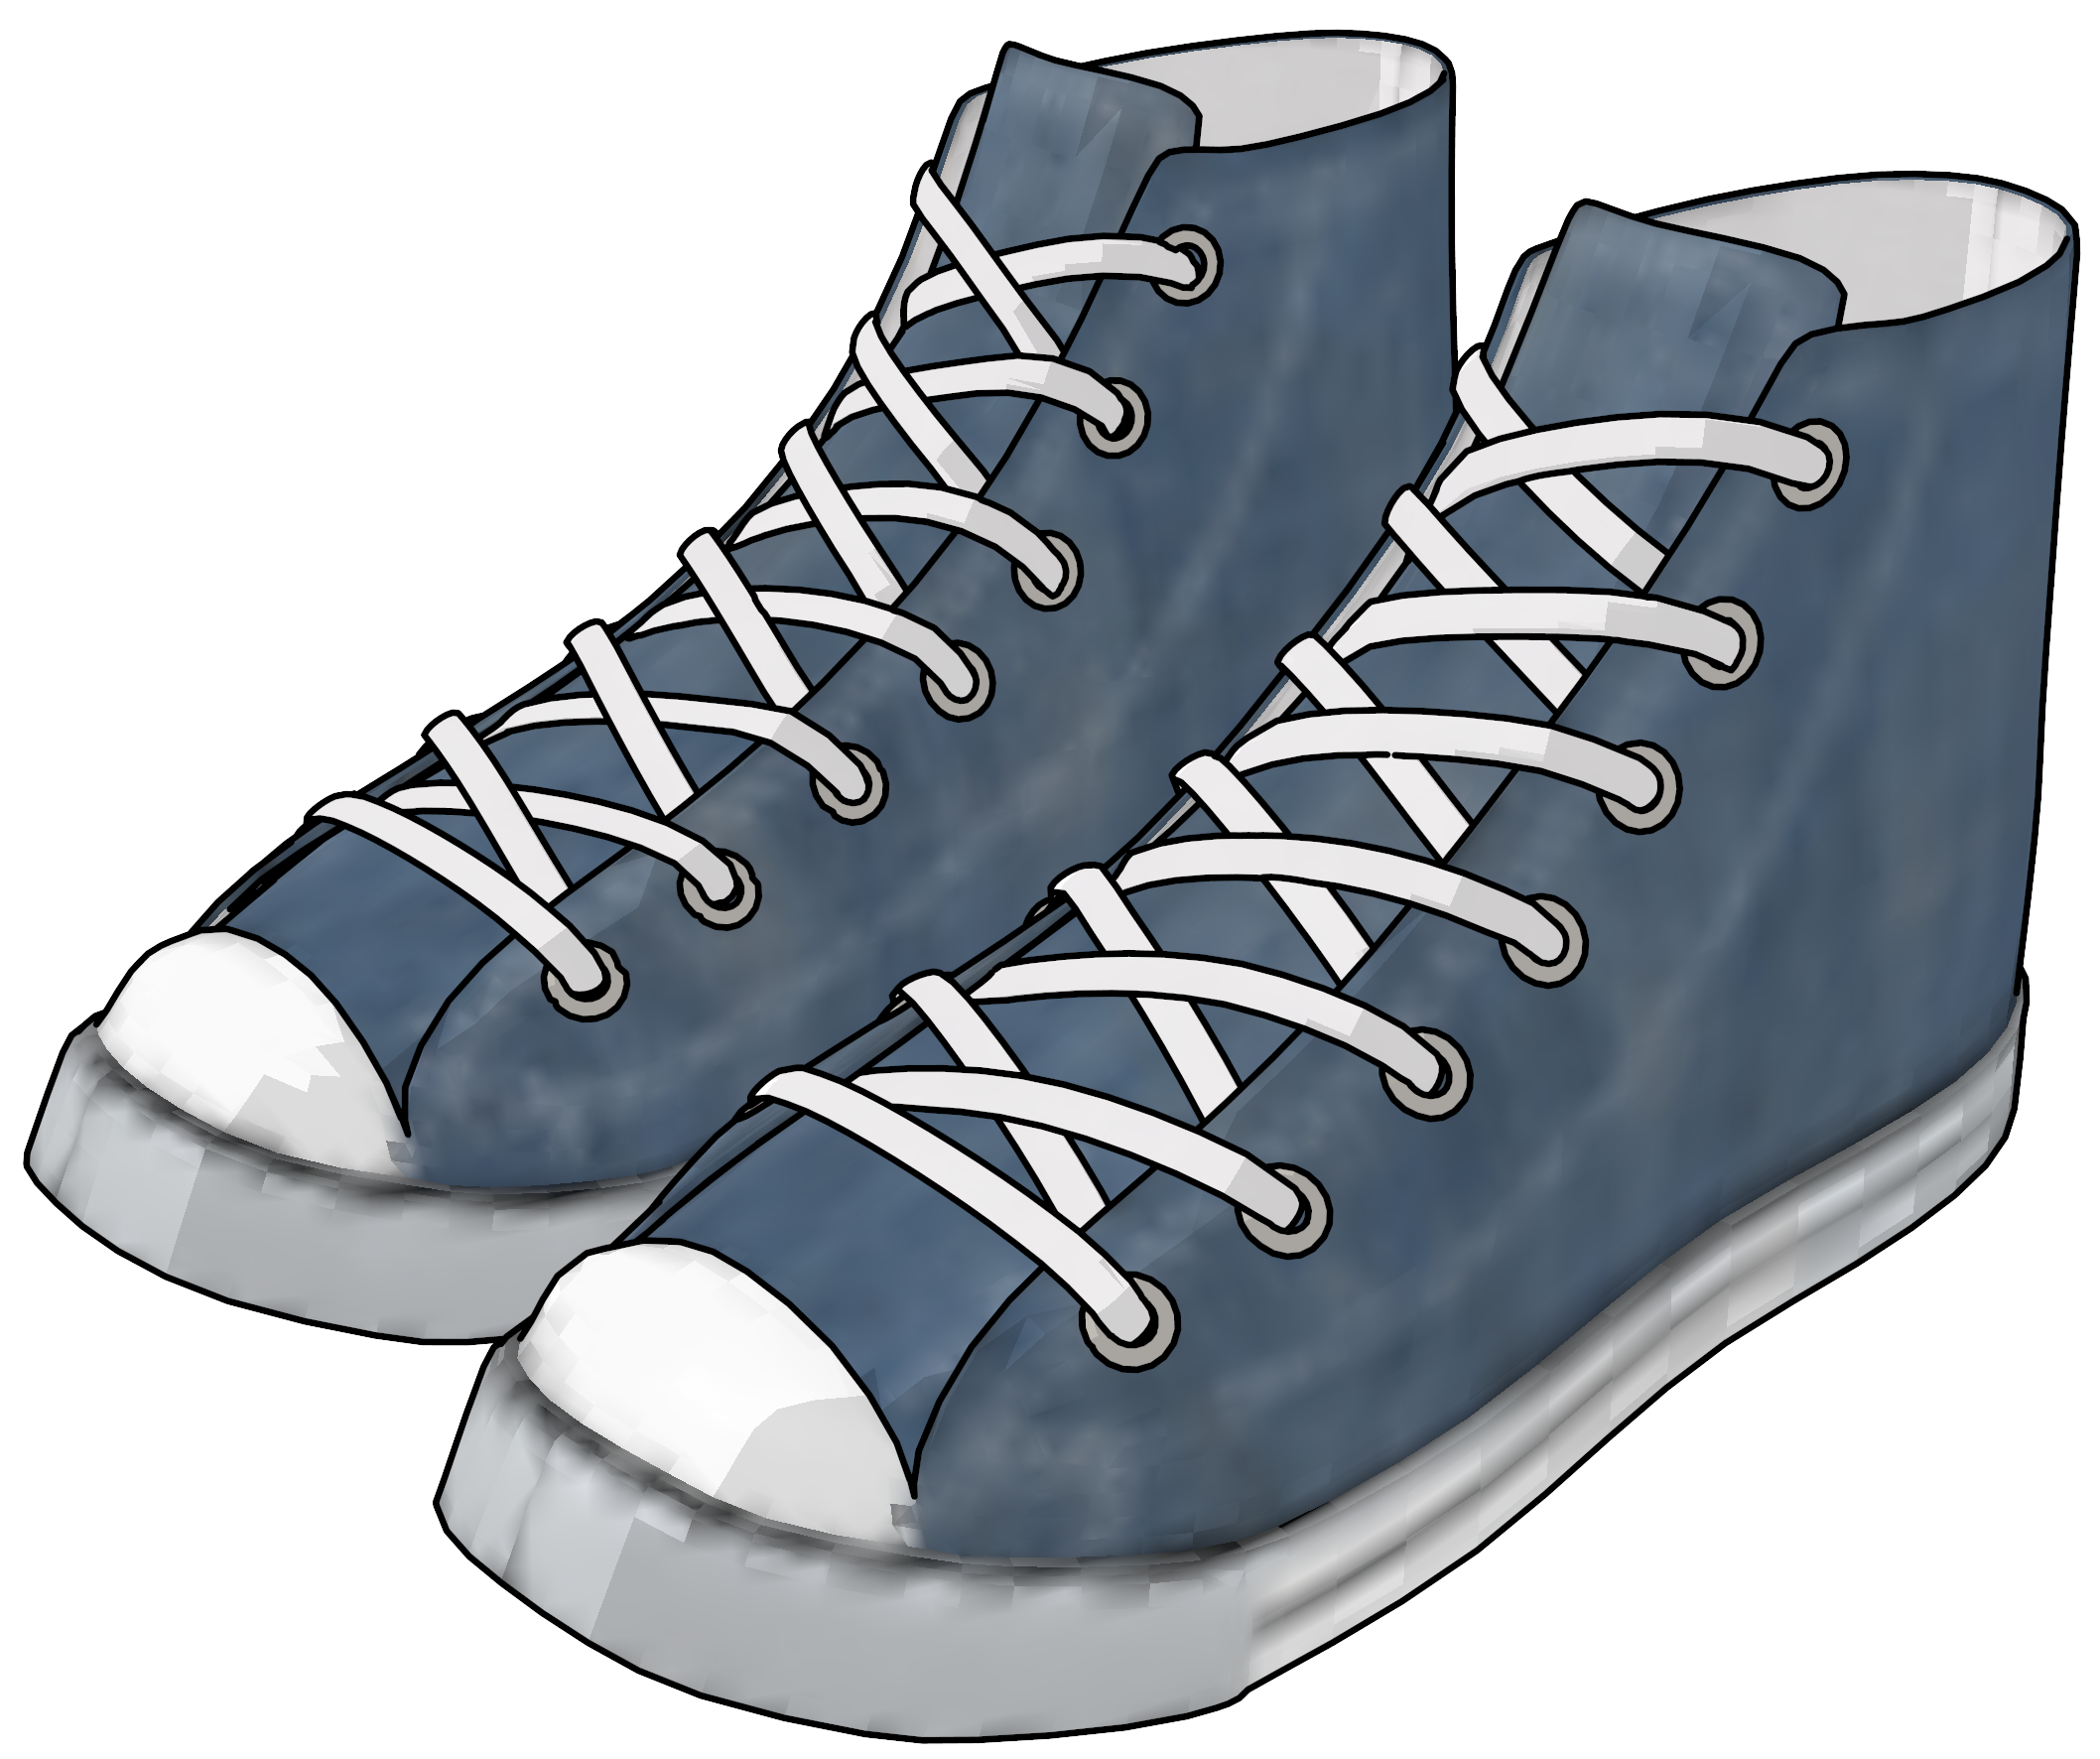 Sneakers shoes png clipartly. Converse clipart high top converse clip transparent stock